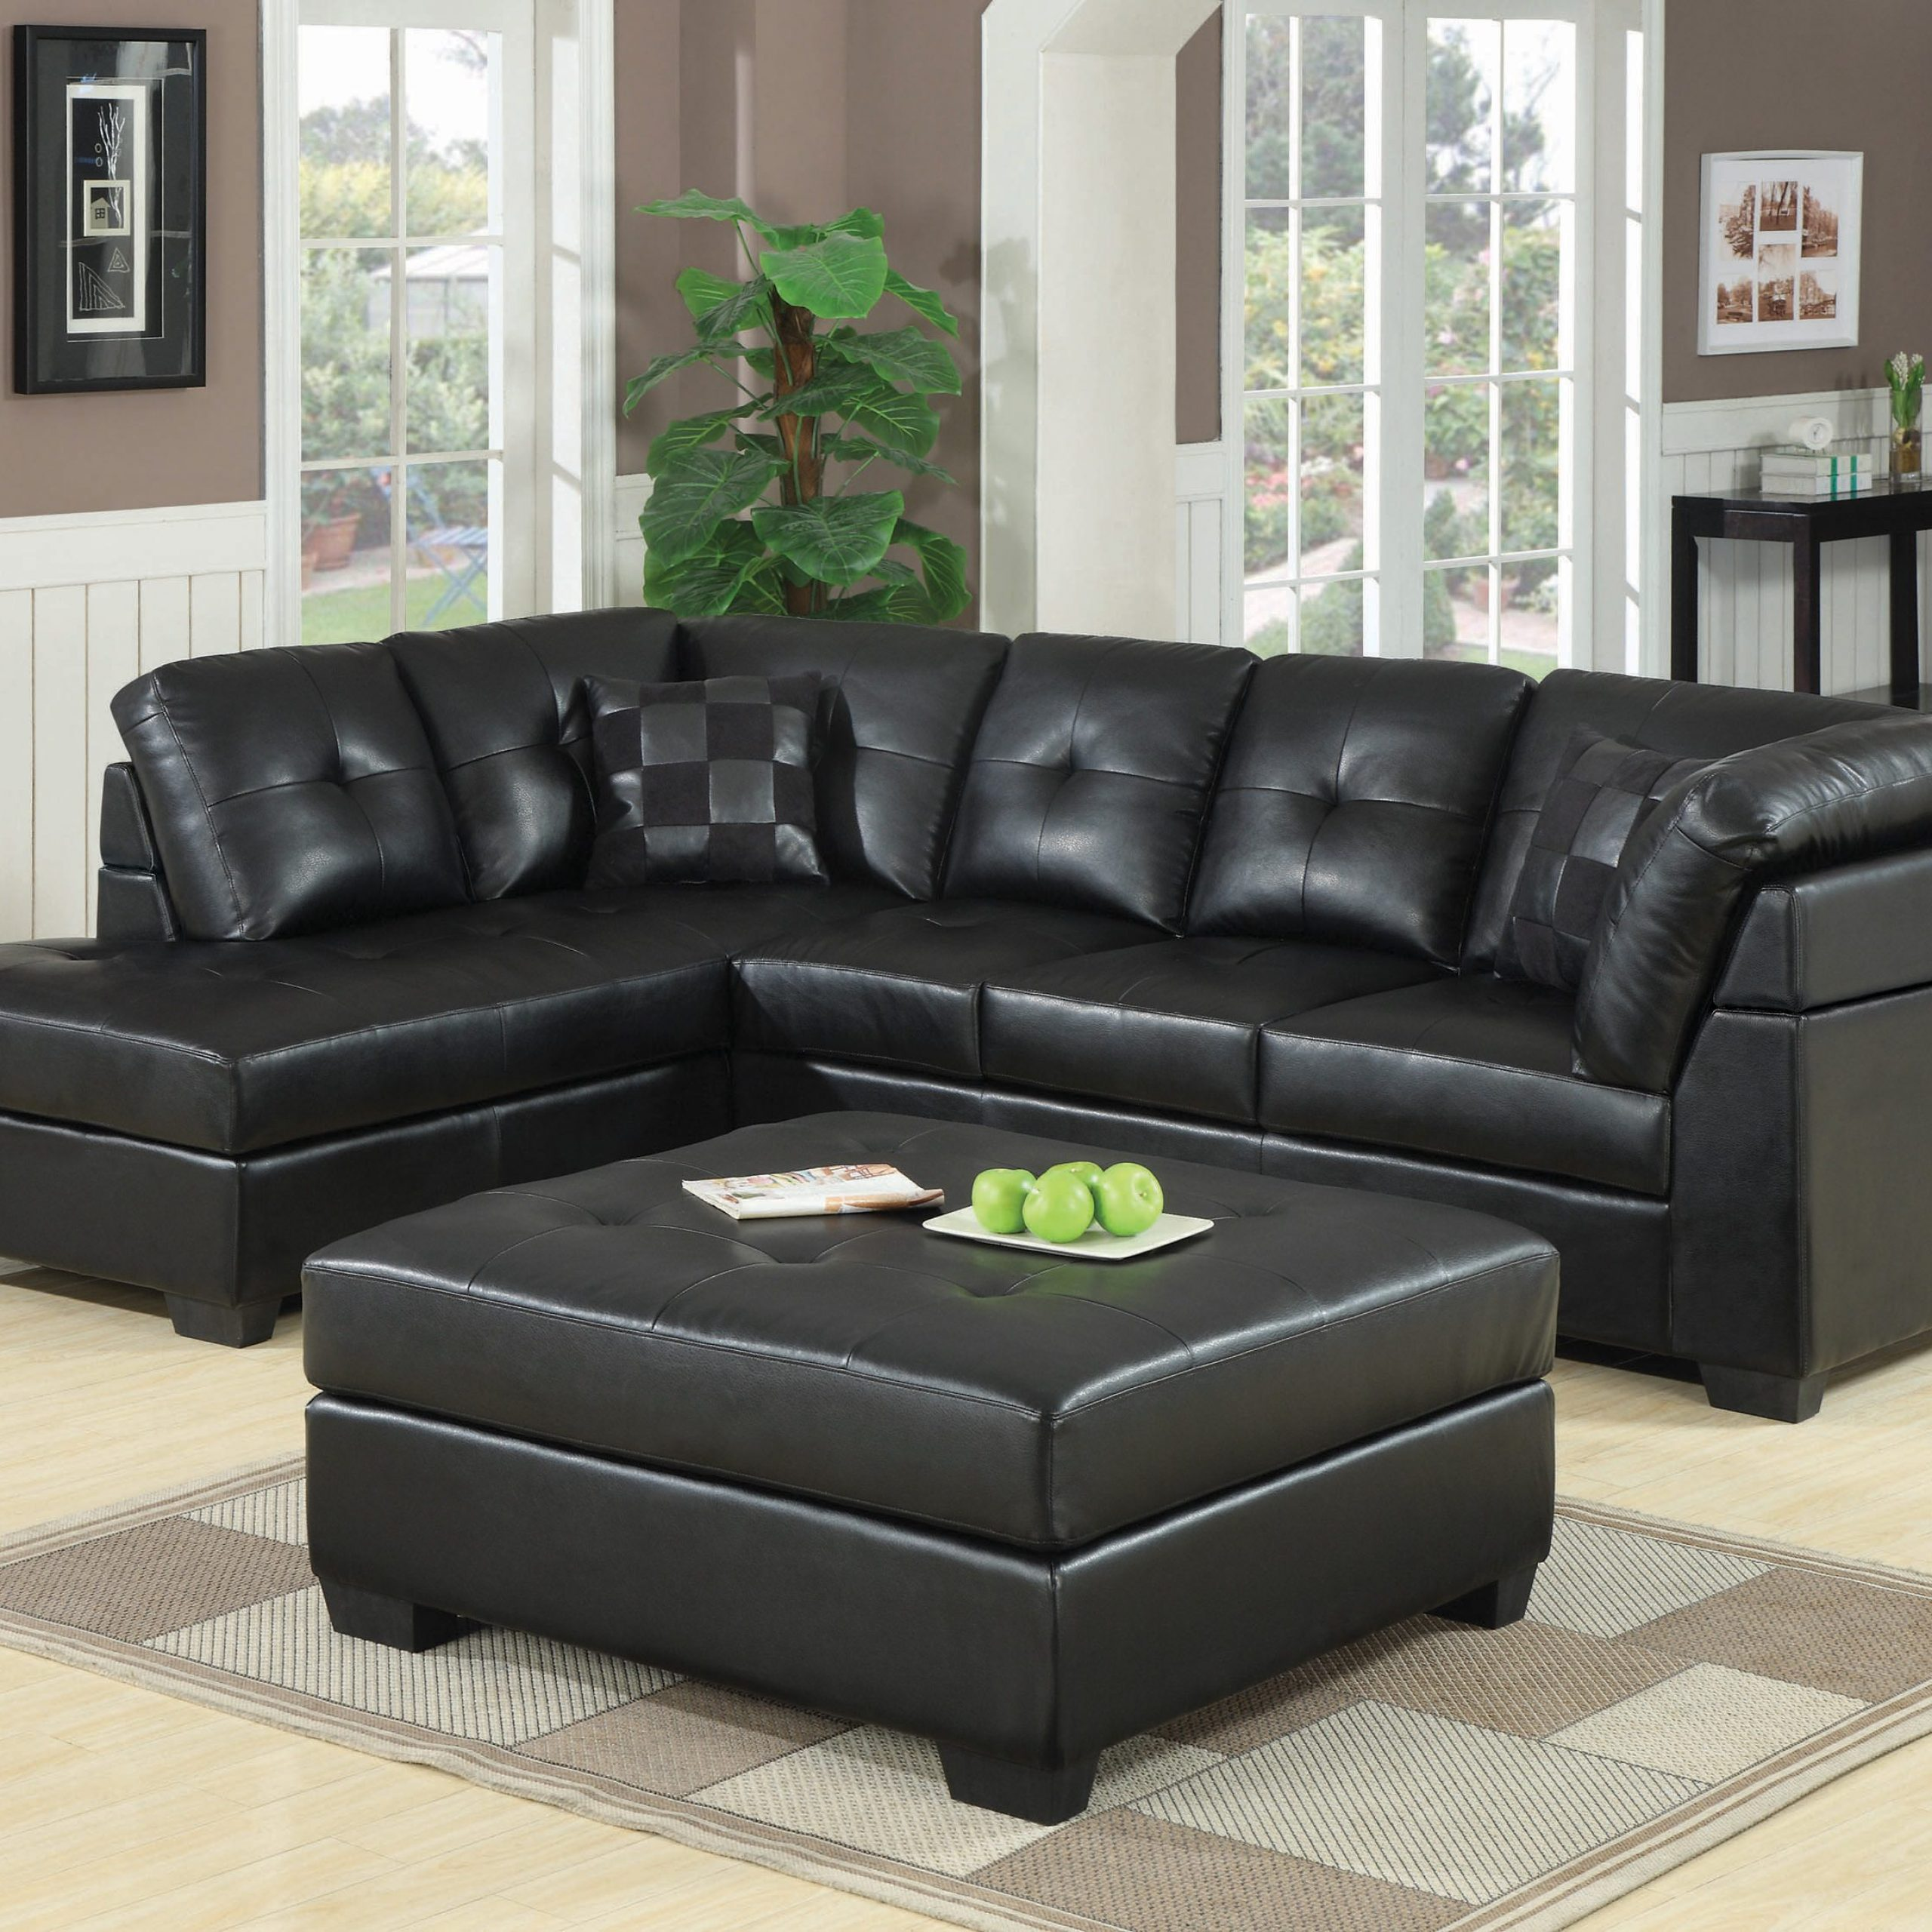 Darie Cushion Back Tufted Sectional Sofa Black – Coaster Within Hannah Right Sectional Sofas (View 15 of 15)